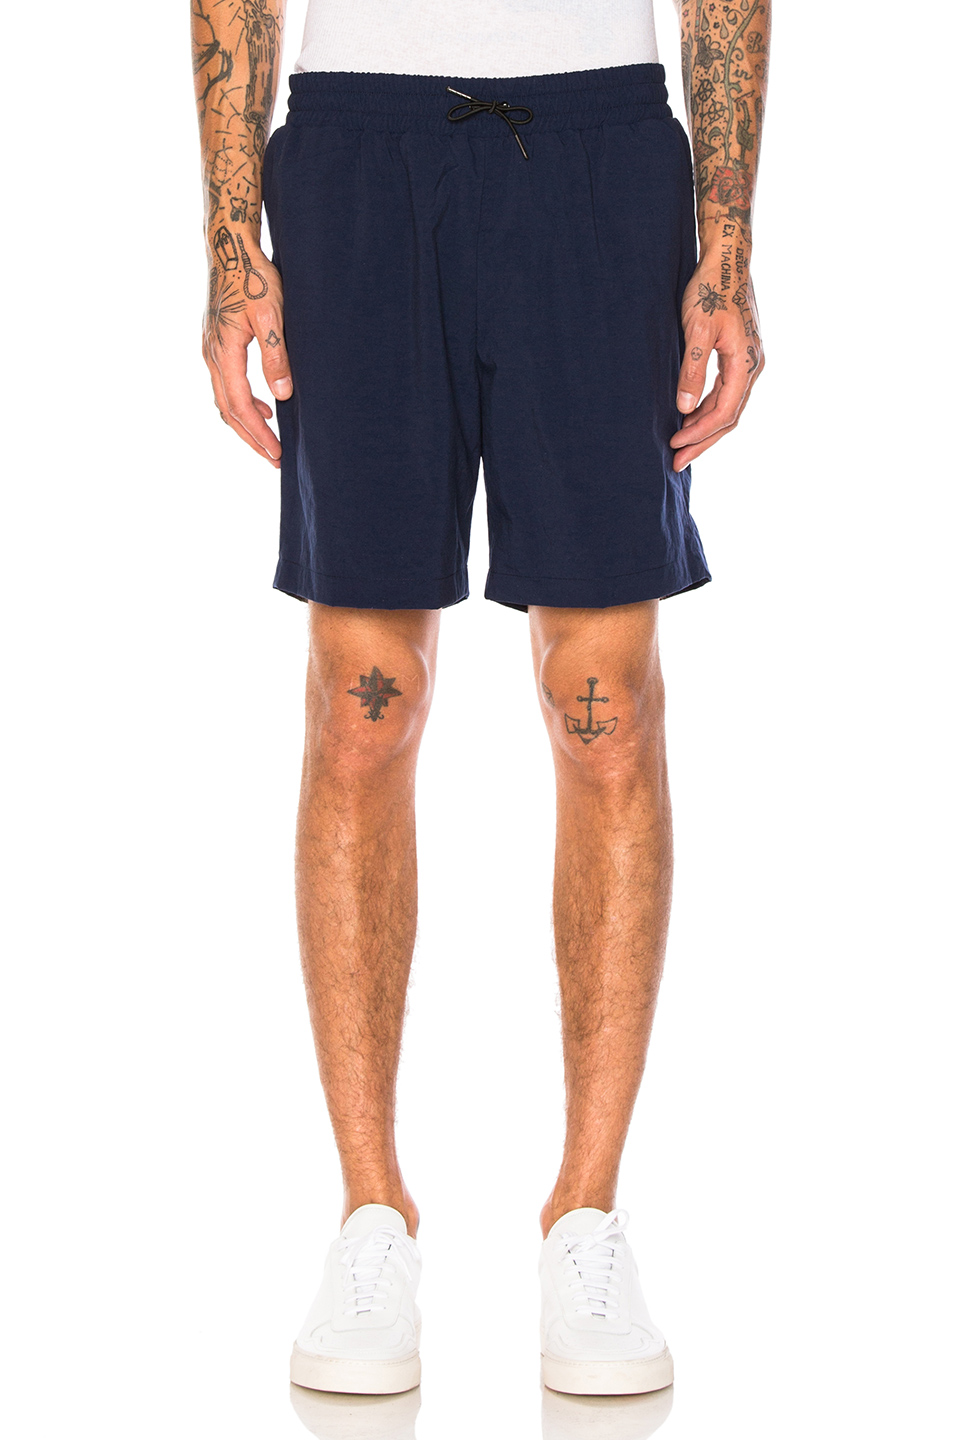 Aime Leon Dore Nylon Shorts in Blue